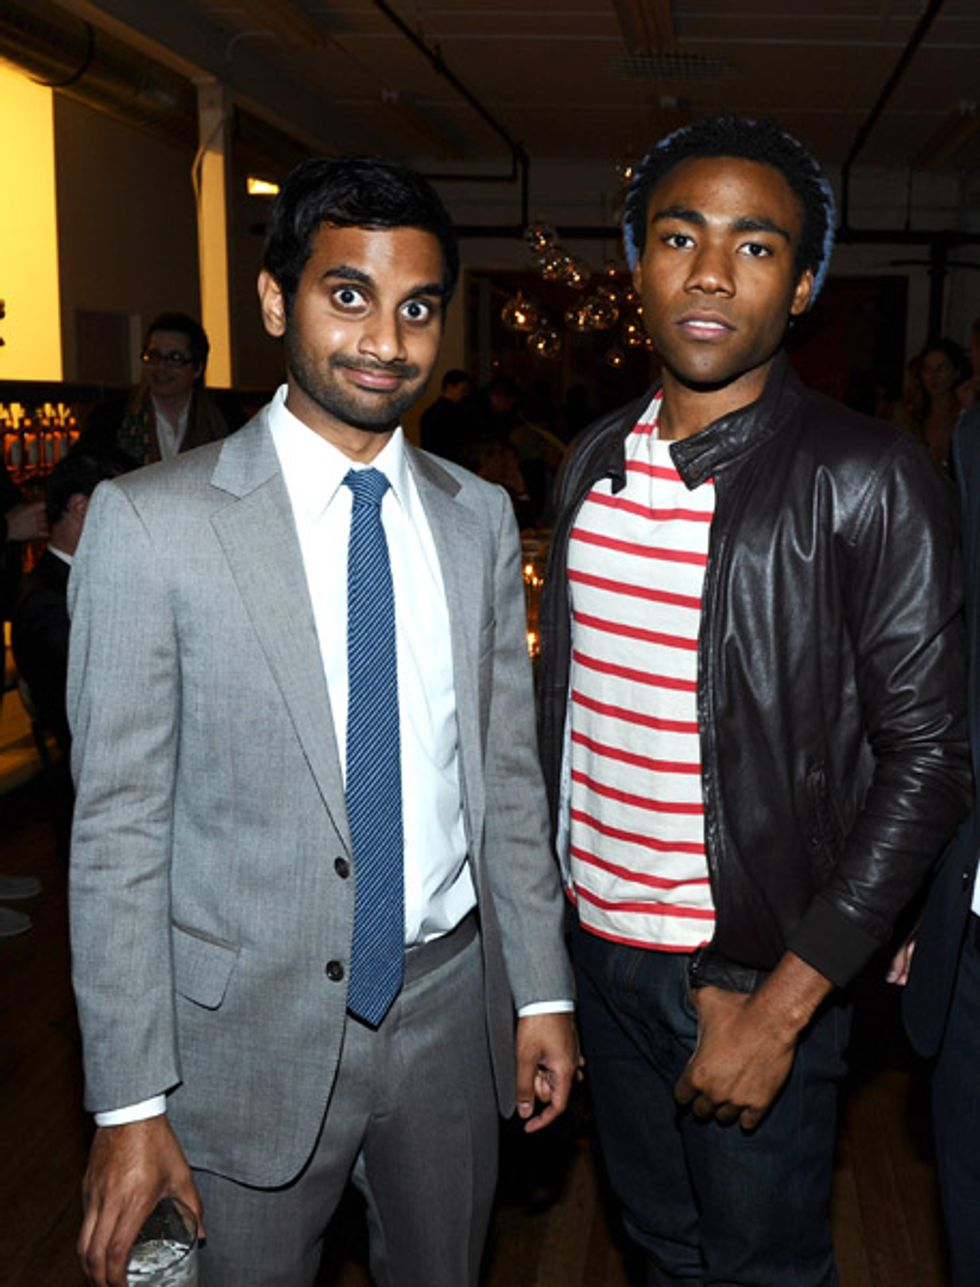 Aziz Ansari and Donald Glover Looking Sharp at Band of Outsiders Dinner